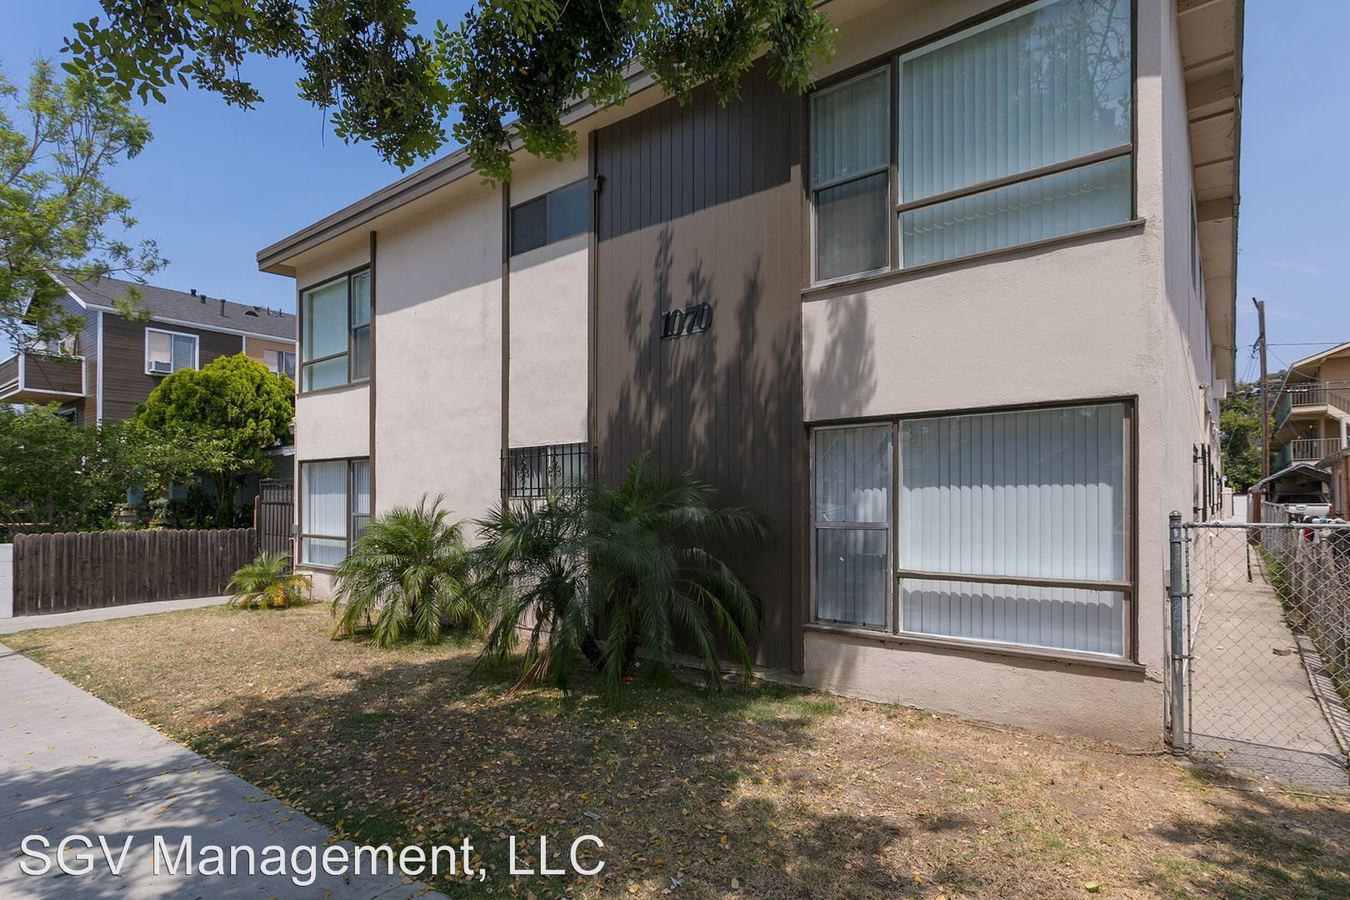 2 Bedrooms 1 Bathroom Apartment for rent at 1070 Stanley Ave in Long Beach, CA